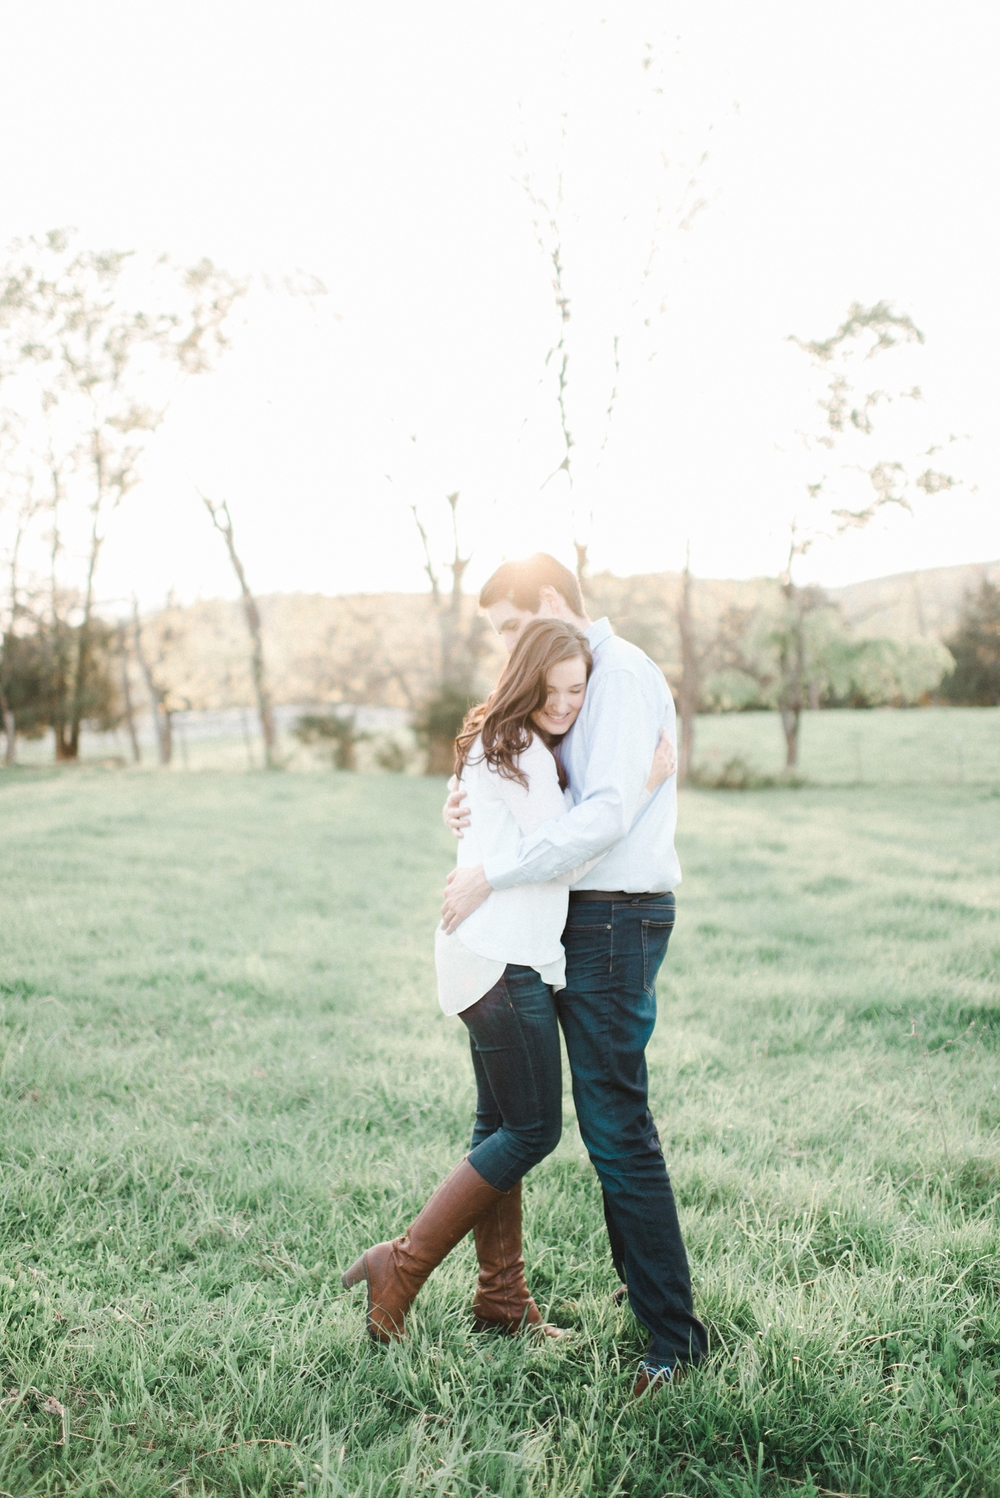 virginia_wedding_photographer_charlottesville_engagemnet_ashlawn_highland_0026.jpg